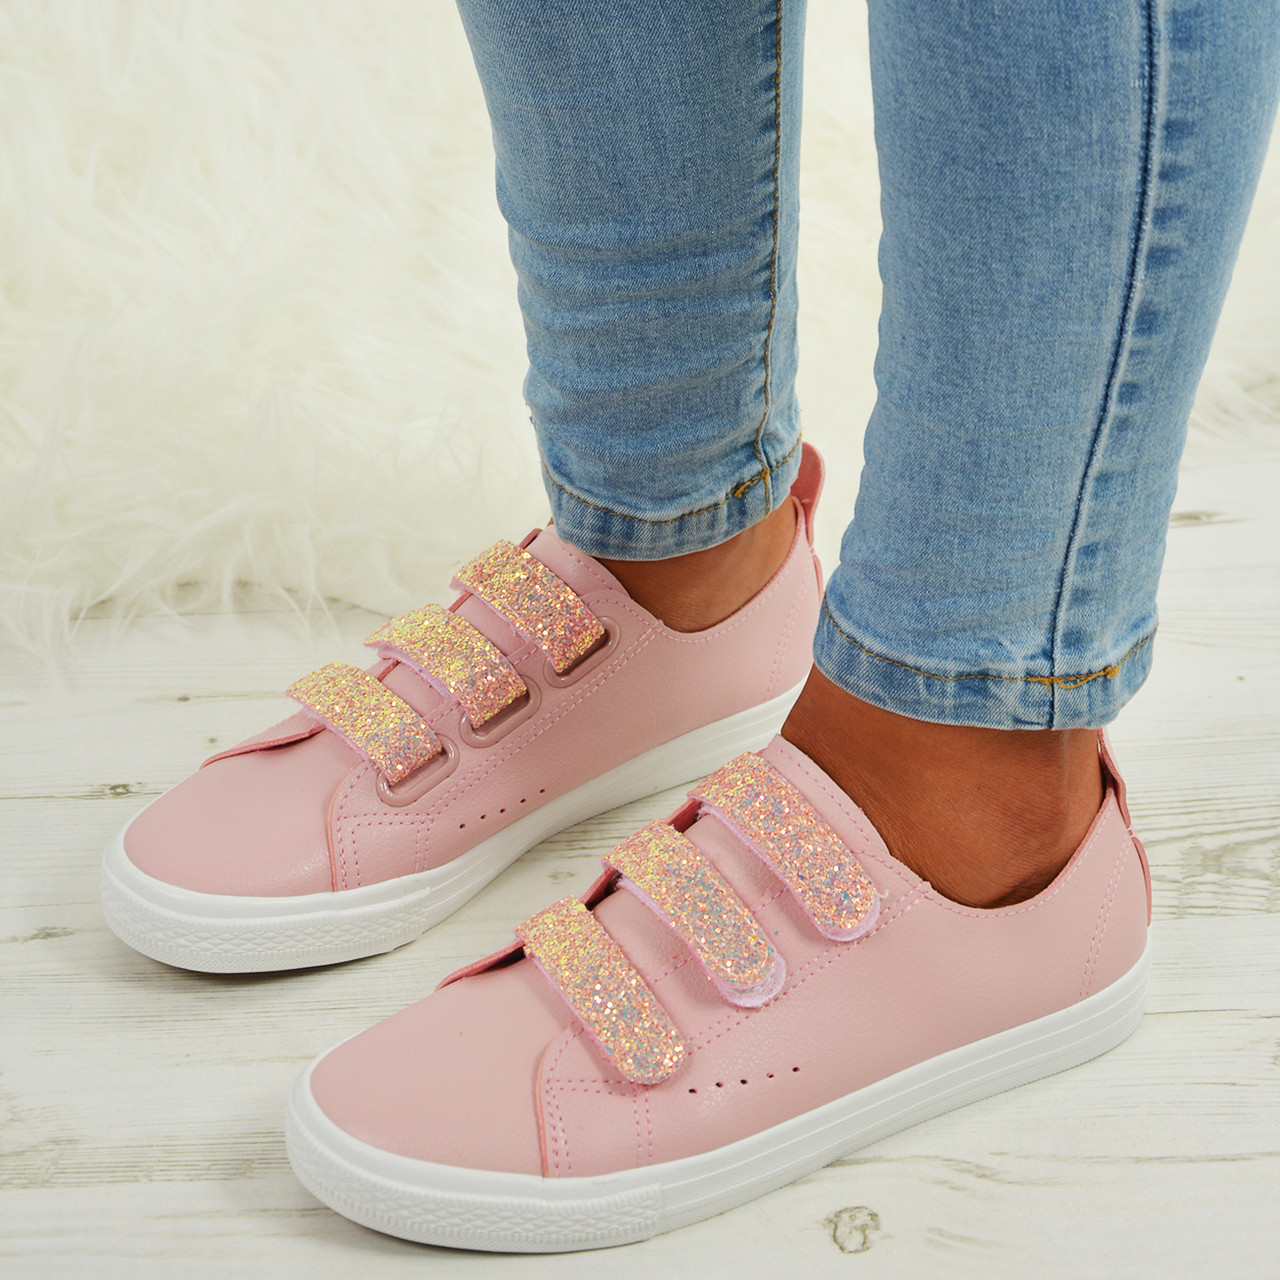 b65167a3095e Ladies Womens Glitter Sparkle Pumps Trainers Sneakers Plimsoll Casual Comfy  Shoe